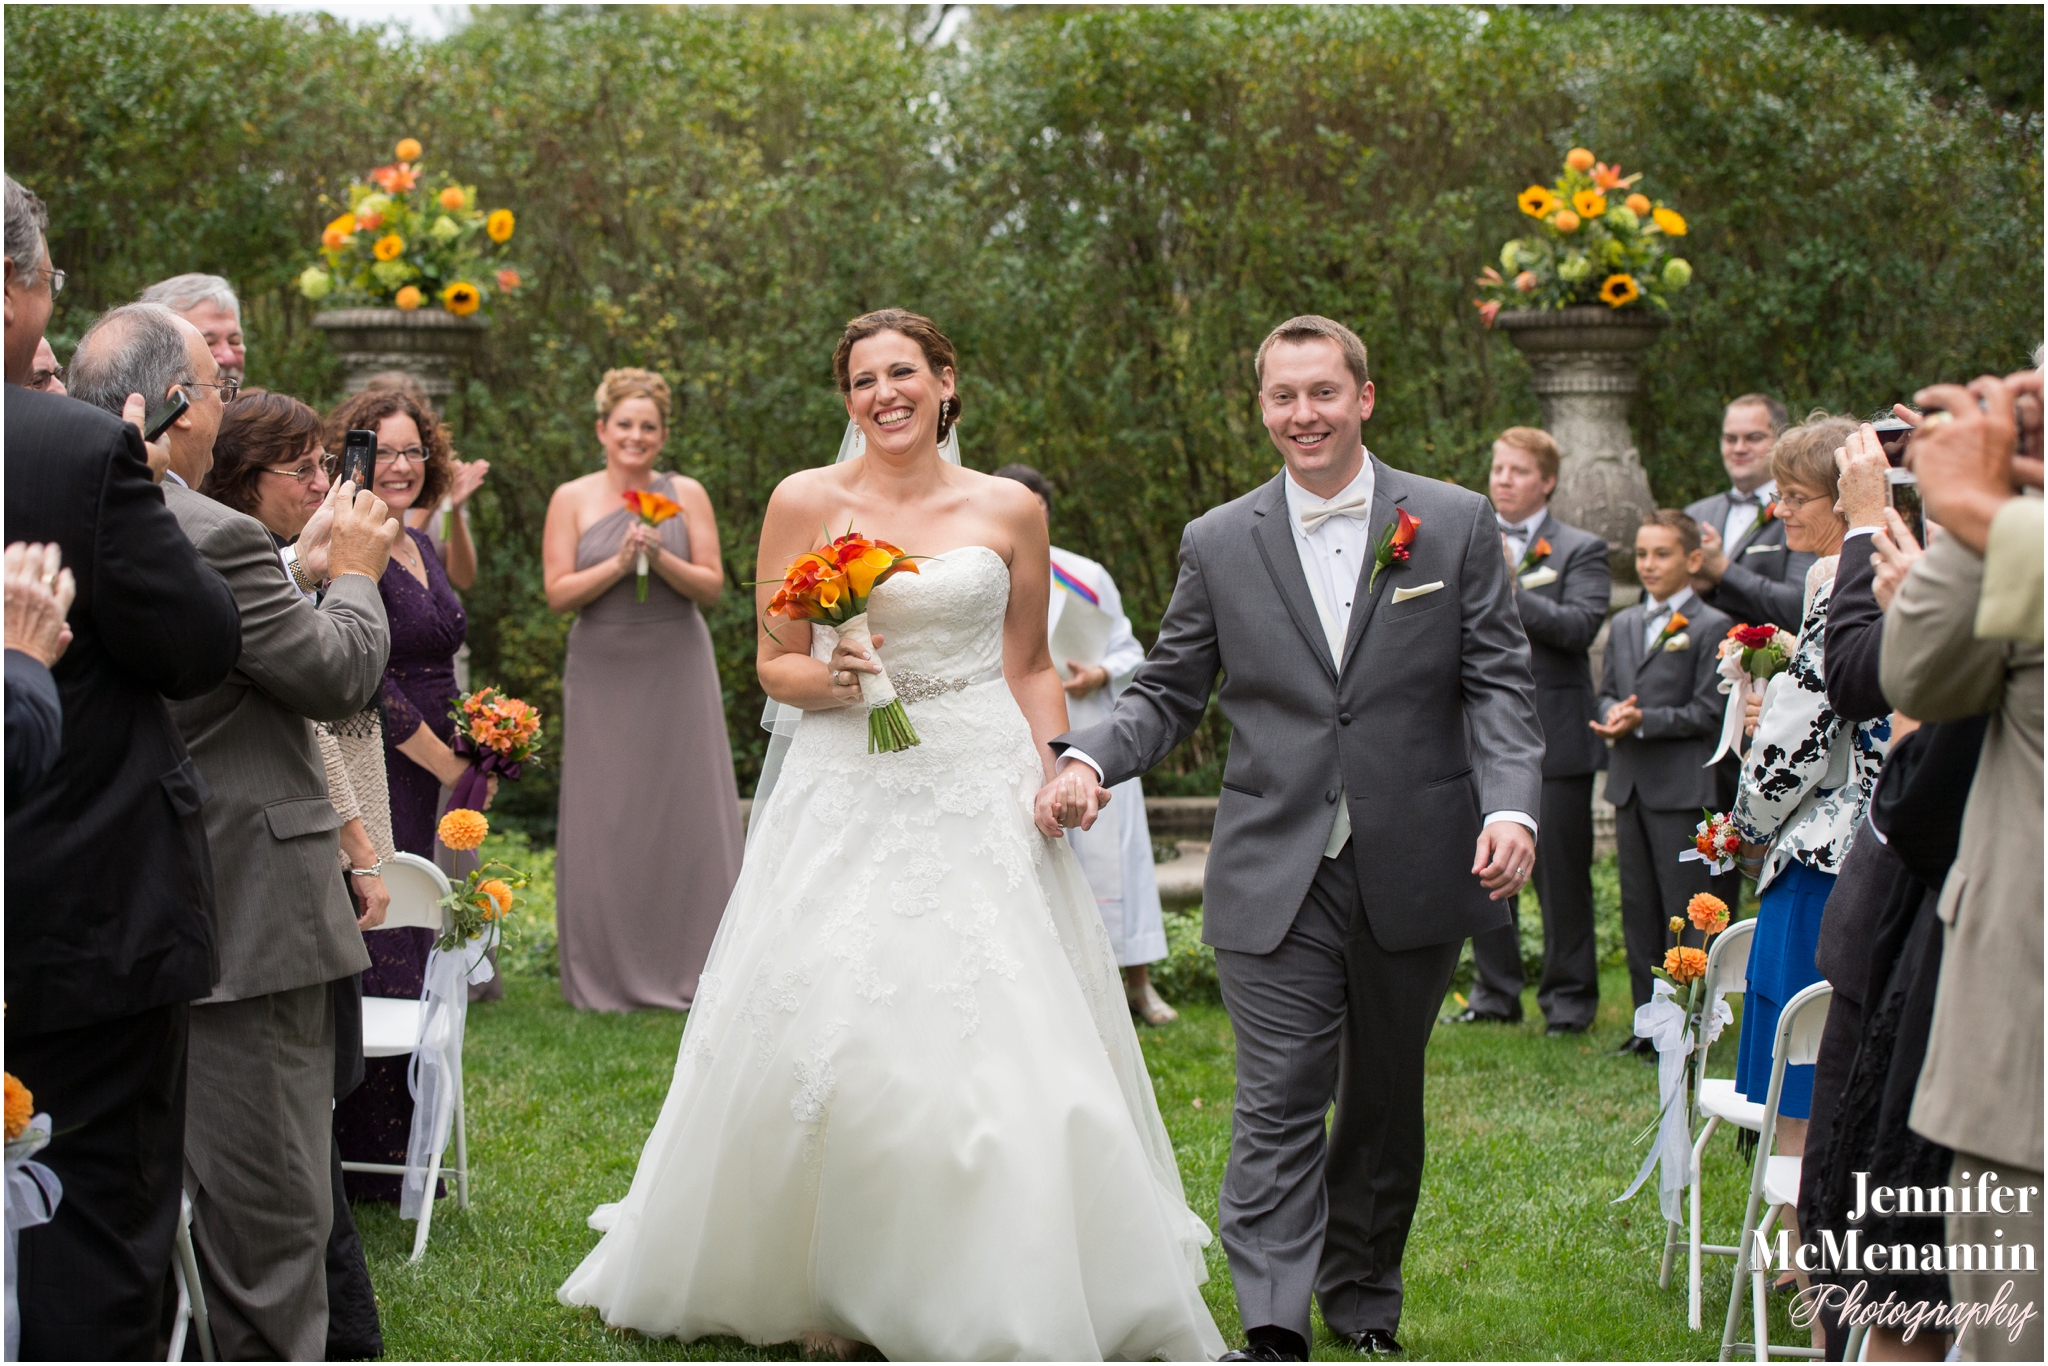 059-HenningMiller_02103-0429_JenniferMcMenaminPhotography_Evergreen-Museum-And-Carriage-House_Evergreen-wedding_Baltimore-wedding-photographer_Baltimore-wedding-photography